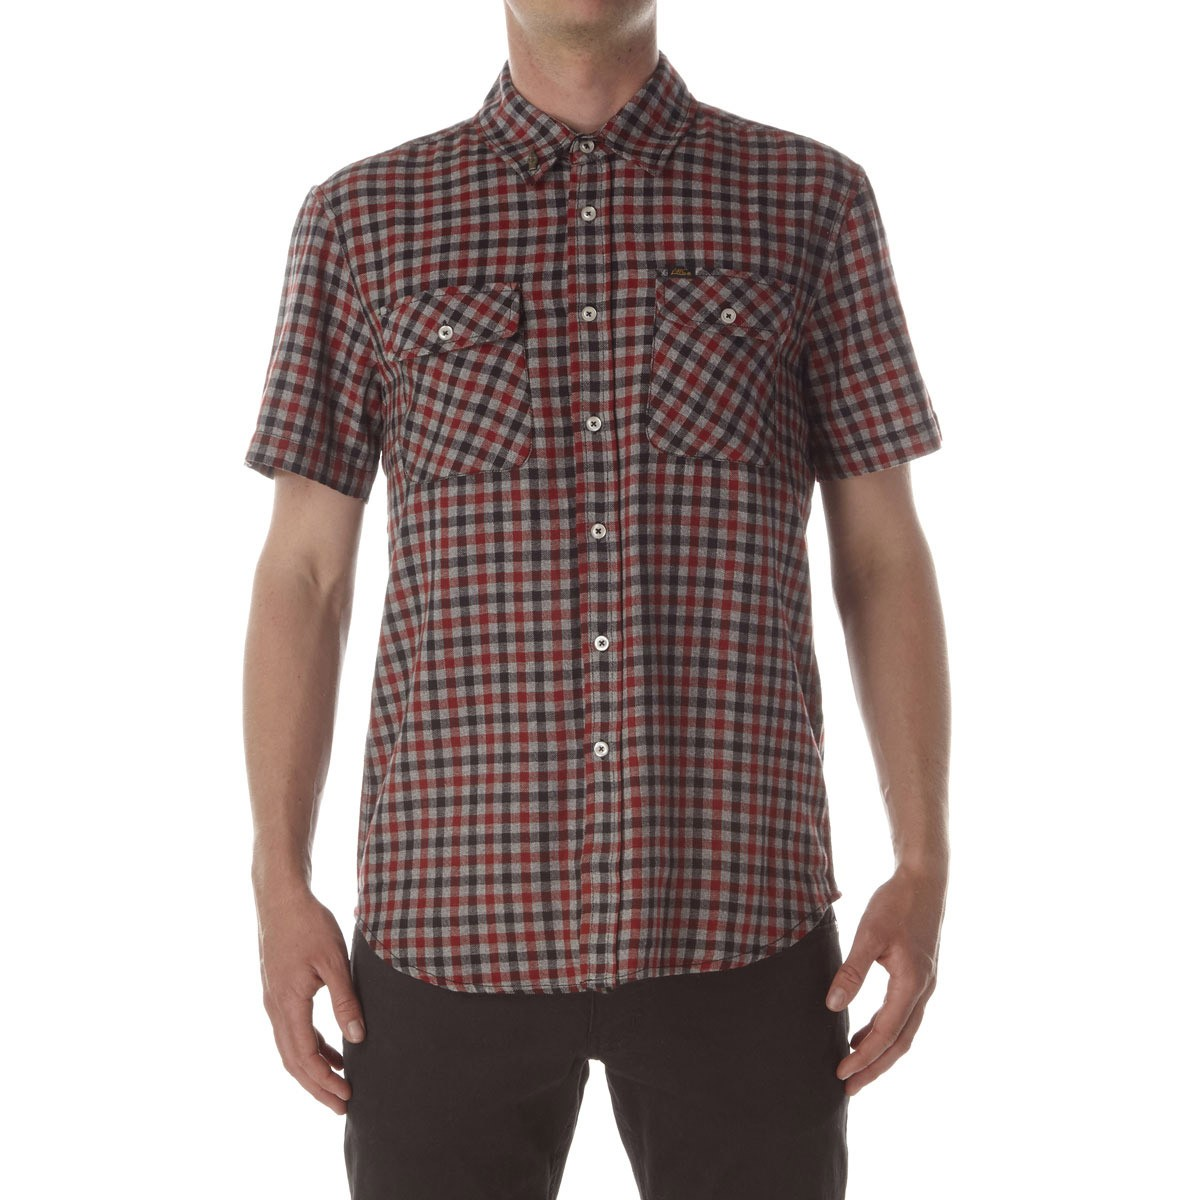 Loser Machine Aston Shirt - Red